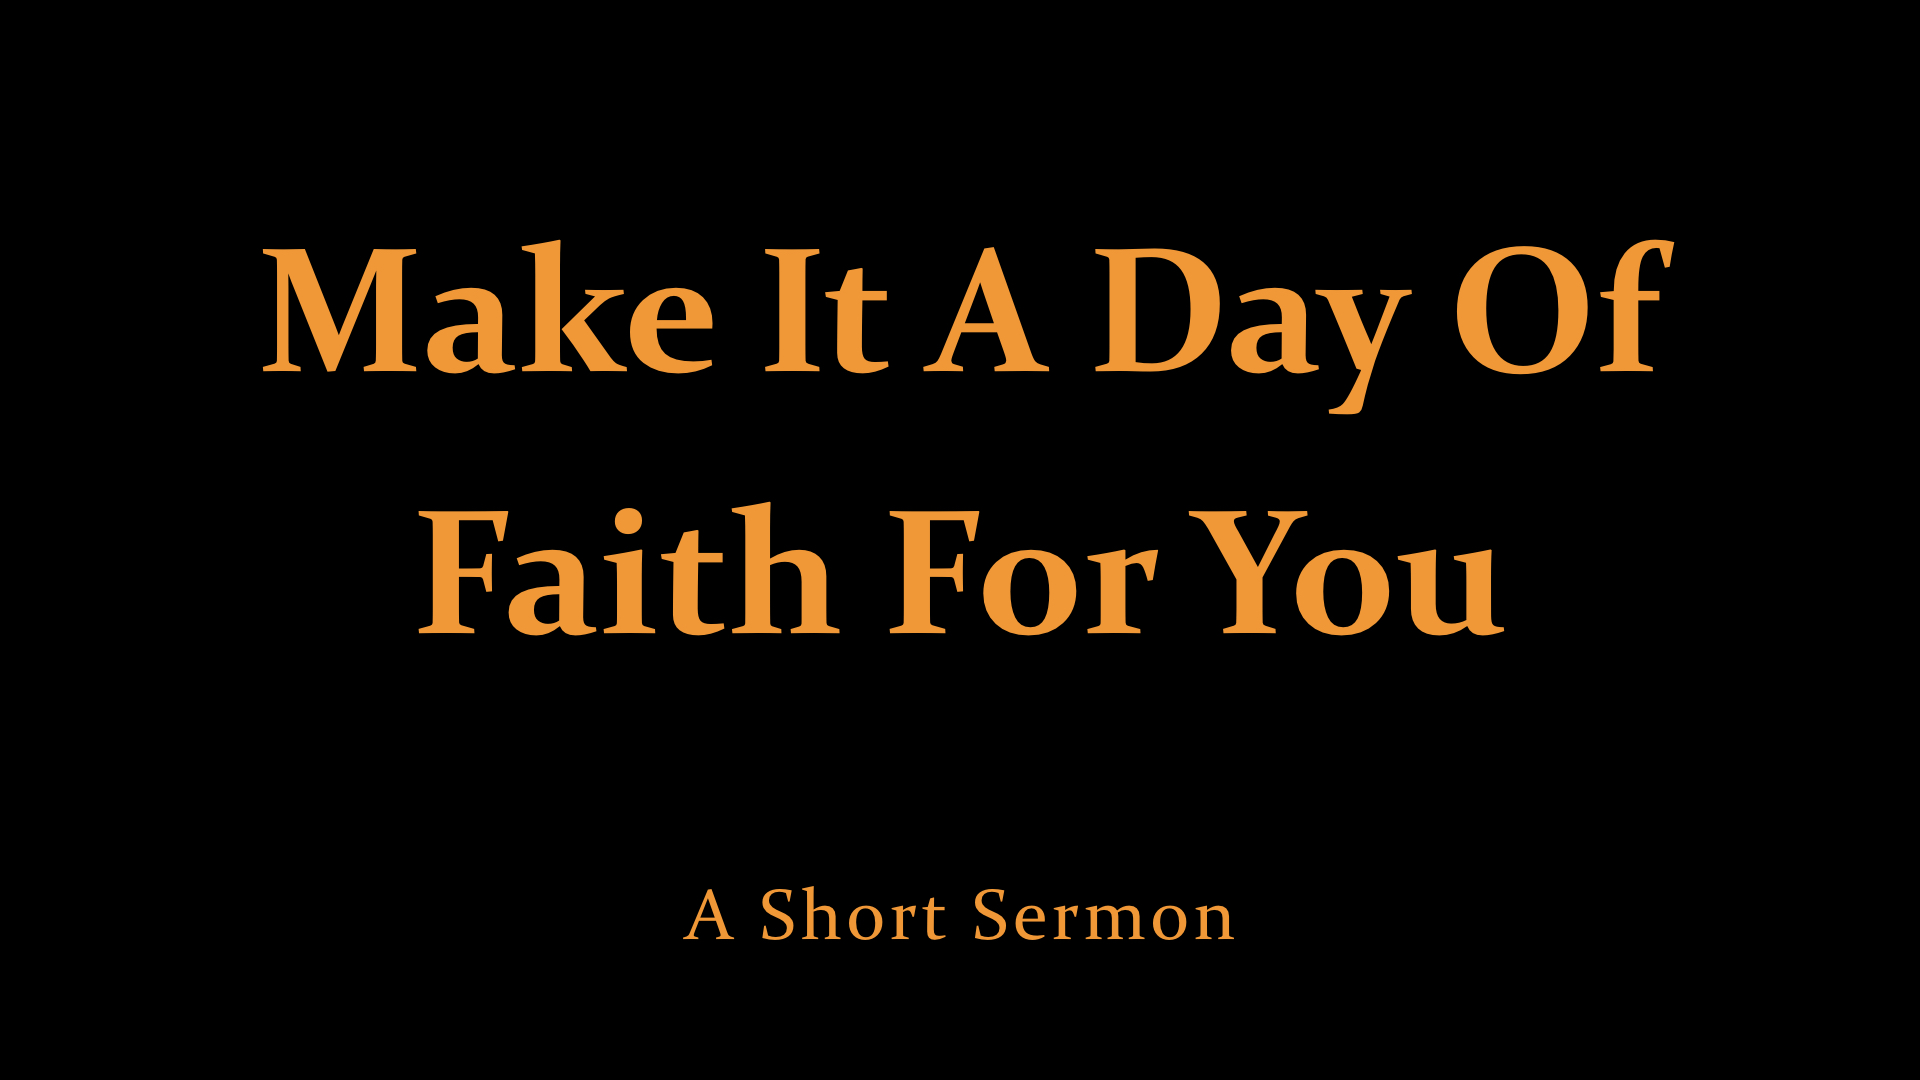 Make It A Day Of Faith For You - A Short Sermon.jpeg